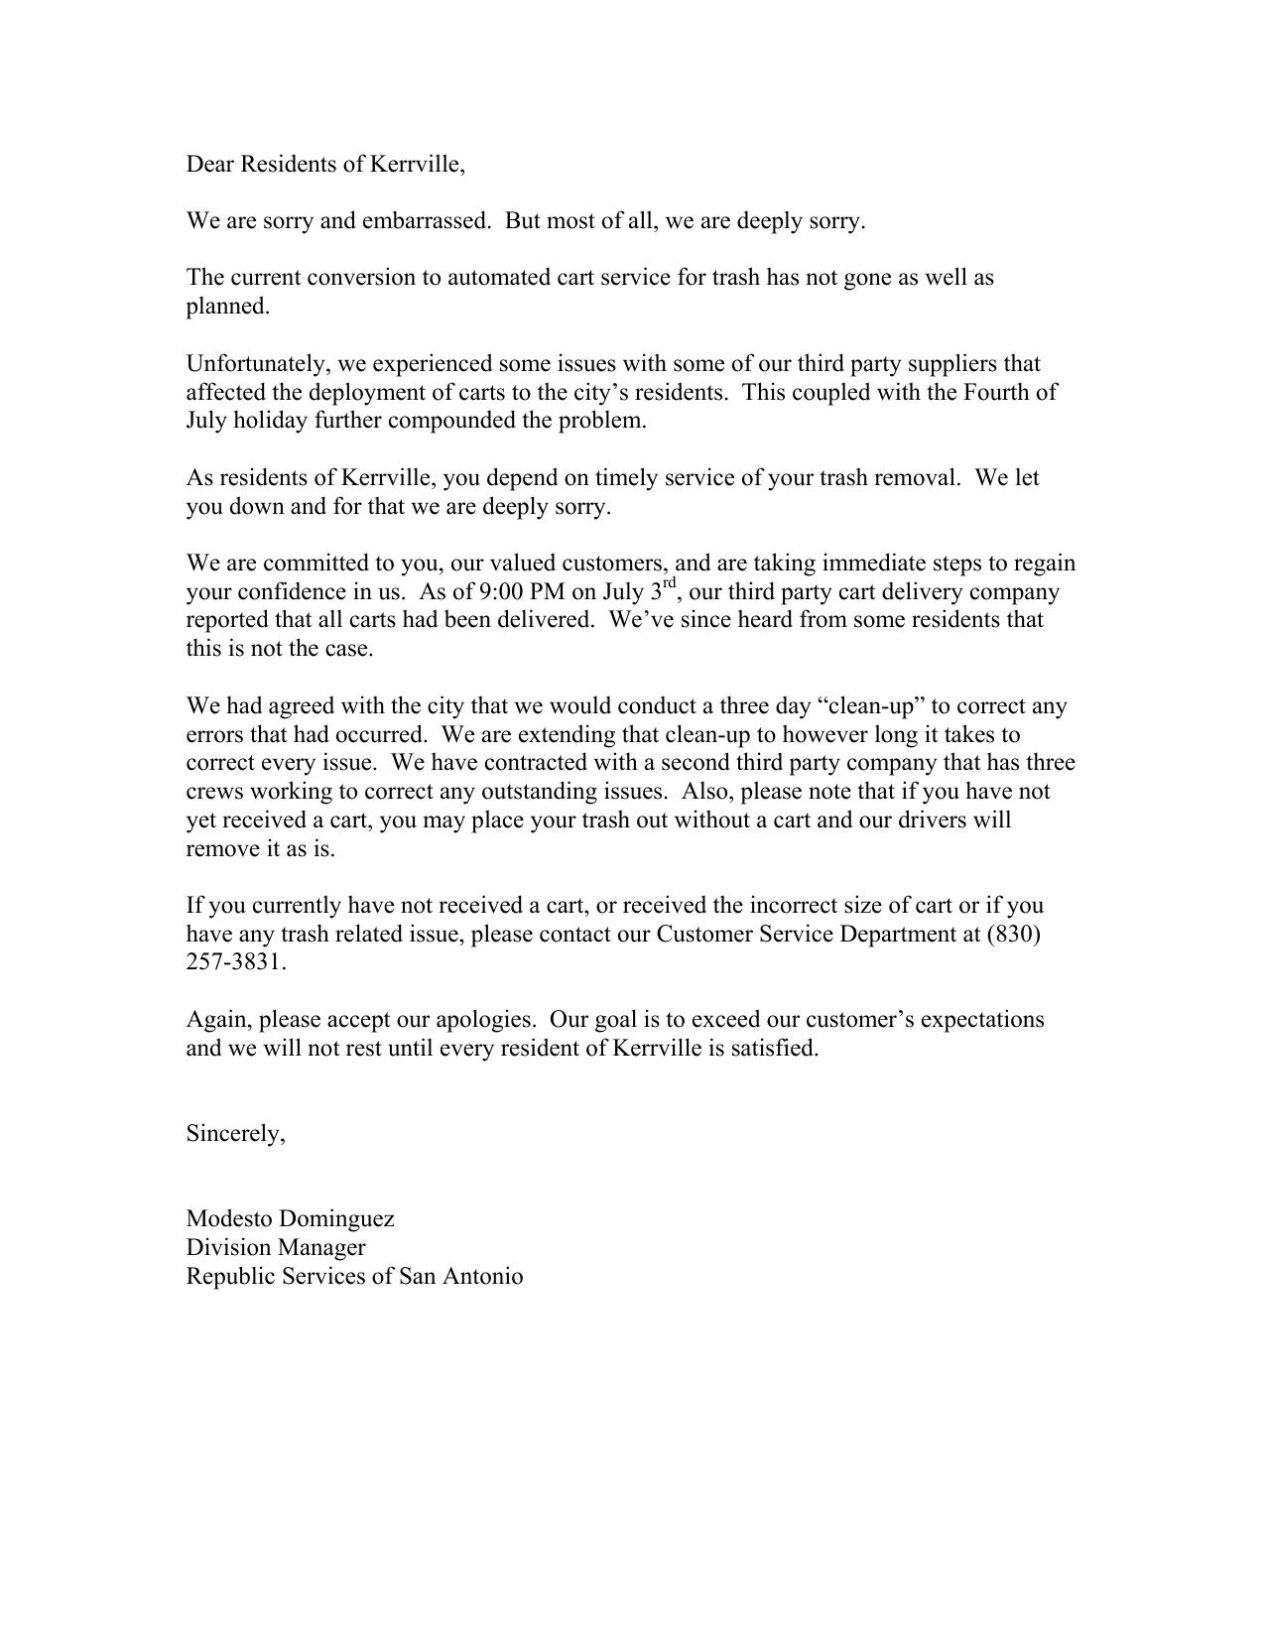 Republic Services apology letter Daily Times Home Republic